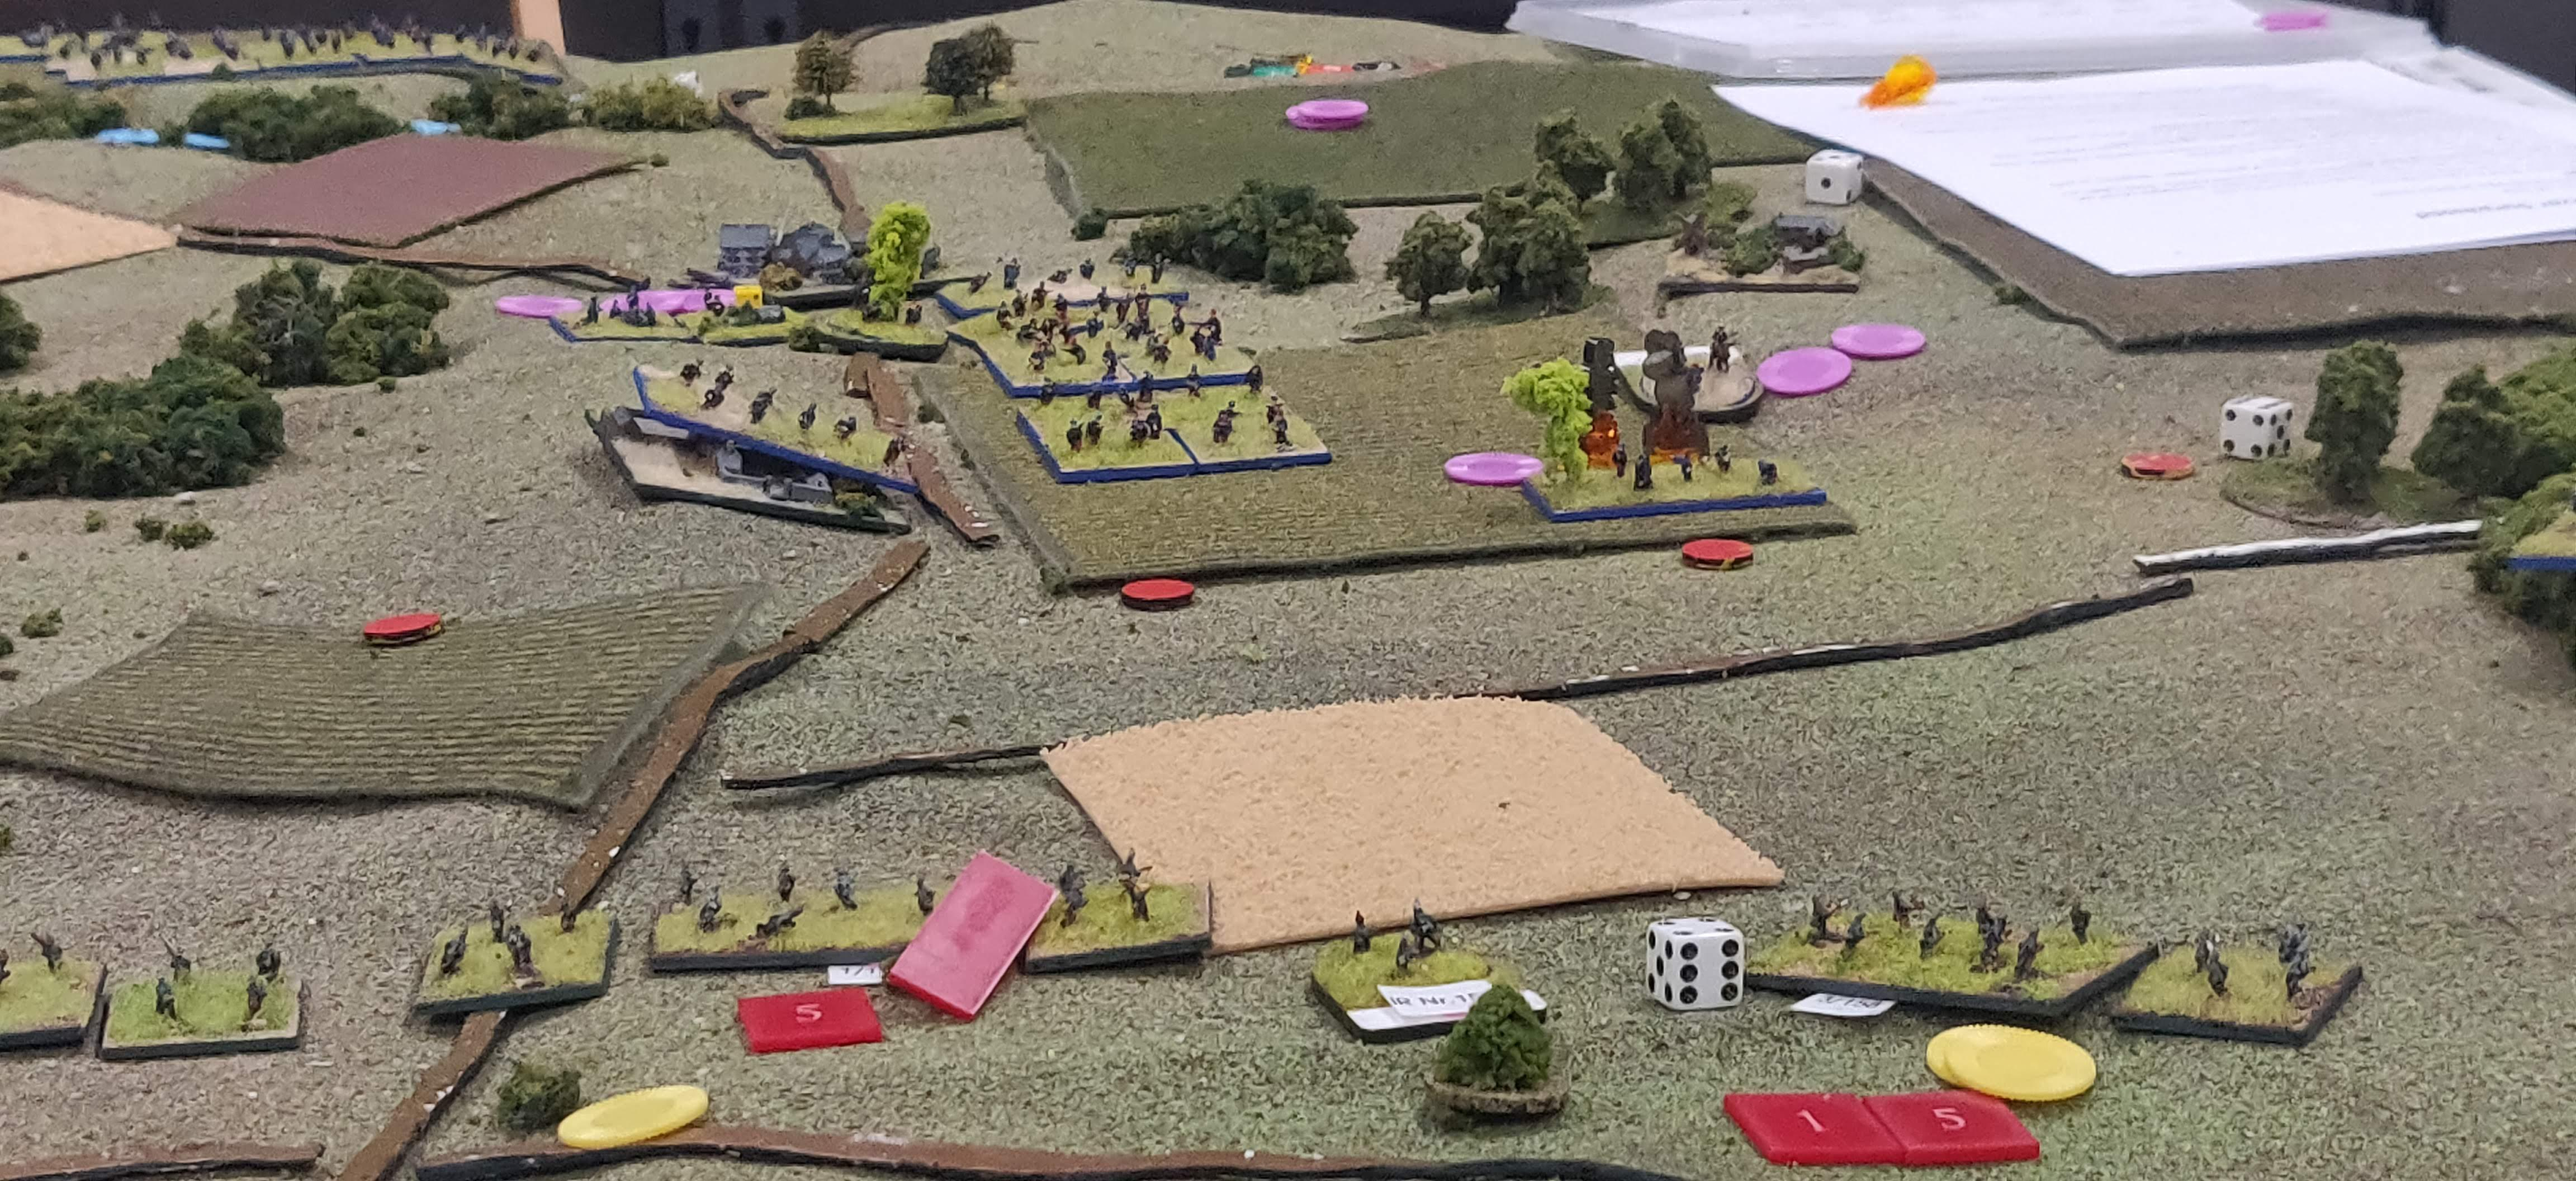 The Final French Reserve Regiment moves into line, at which point I (playing the Germans) threw in the towel, in order to withdraw my division in good order.